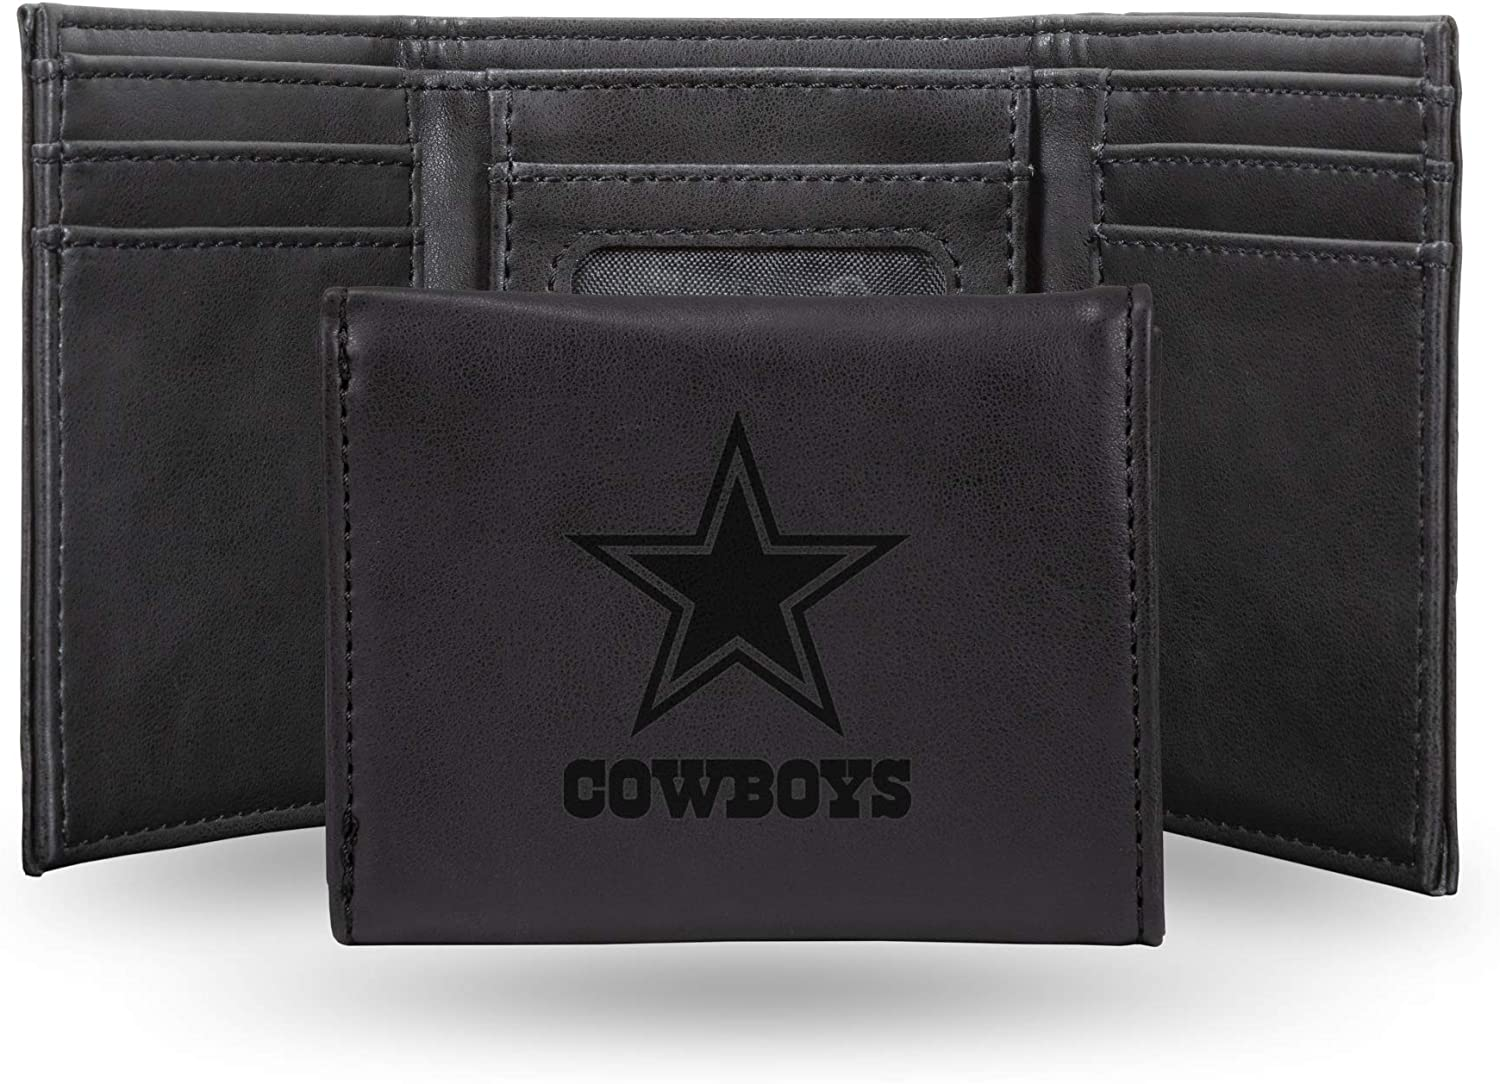 NFL Rico Industries Laser Engraved Sales of SALE items from new works Trifold Wallet Dallas Cowboy Regular store